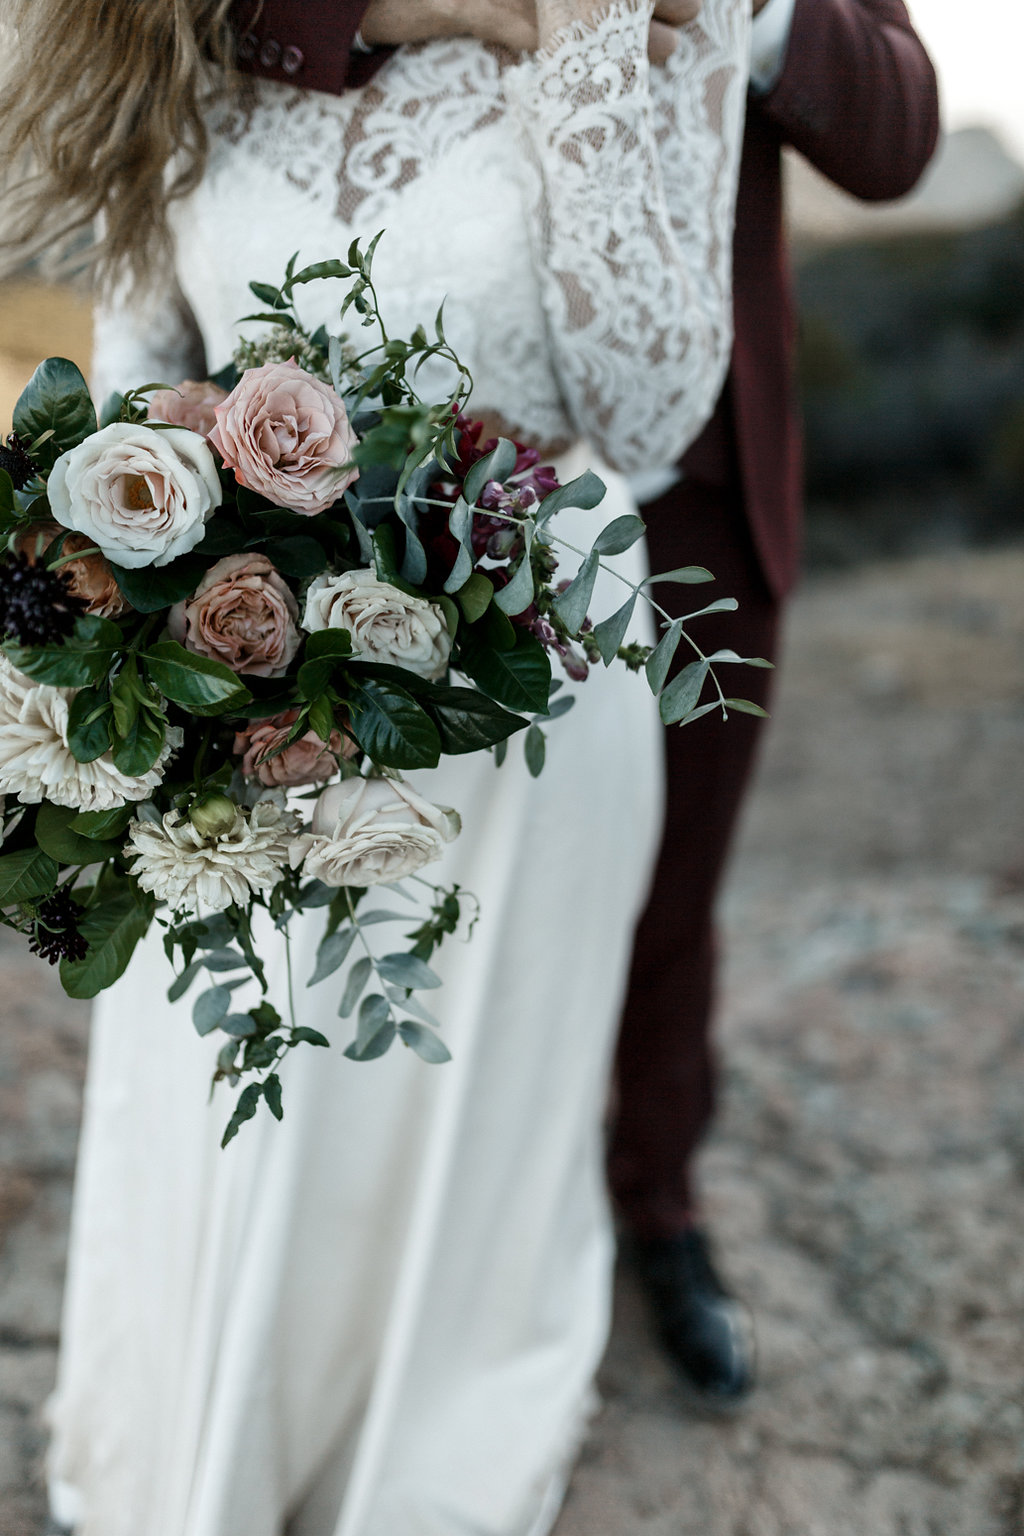 Ivory, marsala & mauve bridal bouquet | Malibu Weddings | Compass Floral Design | Wedding Florist in San Diego and Southern California | Devin Jenkins Photography #elopement   #elopementinspiration  #wedding   #weddinginspiration   #bohowedding   #bohemianwedding   #weddingceremony   #outdoorceremony  #sandiegoweddingflorist   #ojaiweddingflorist   #santabarbaraweddingflorist  #romanticweddingflowers   #bridalstyle  #weddingfashion